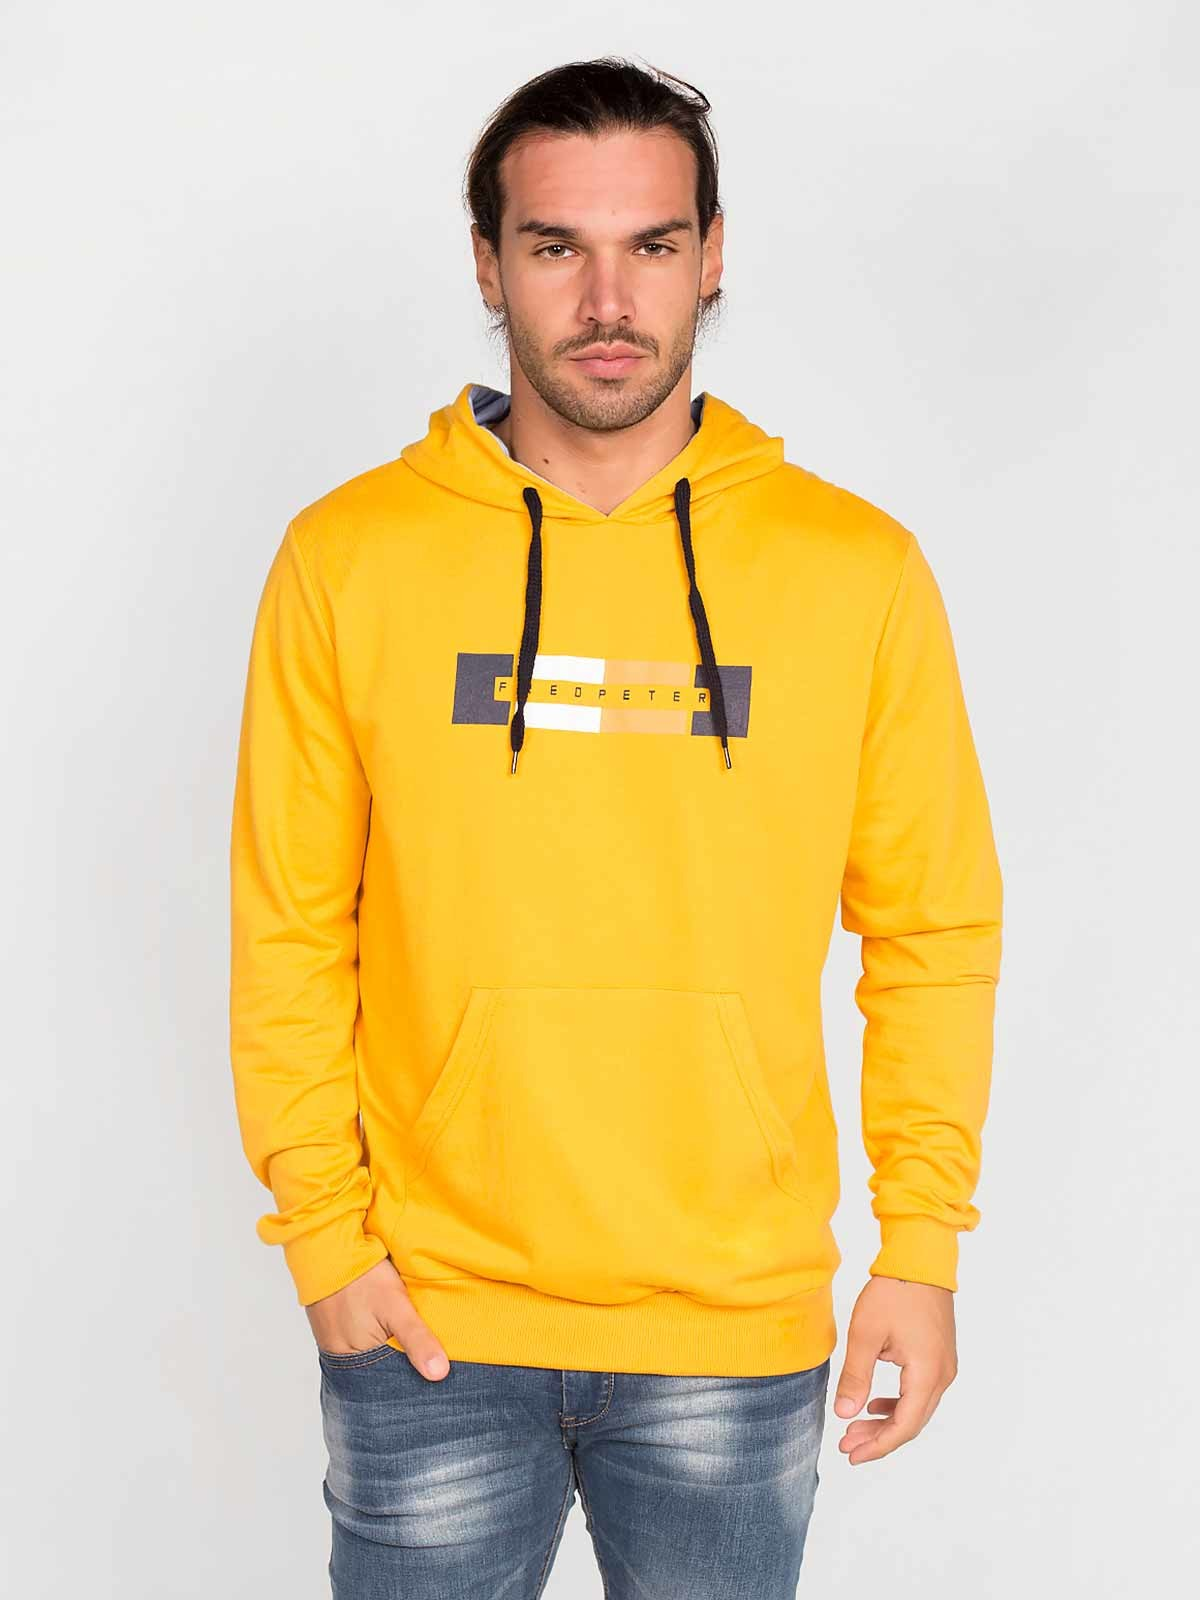 Camisola hoodie Fred Peter